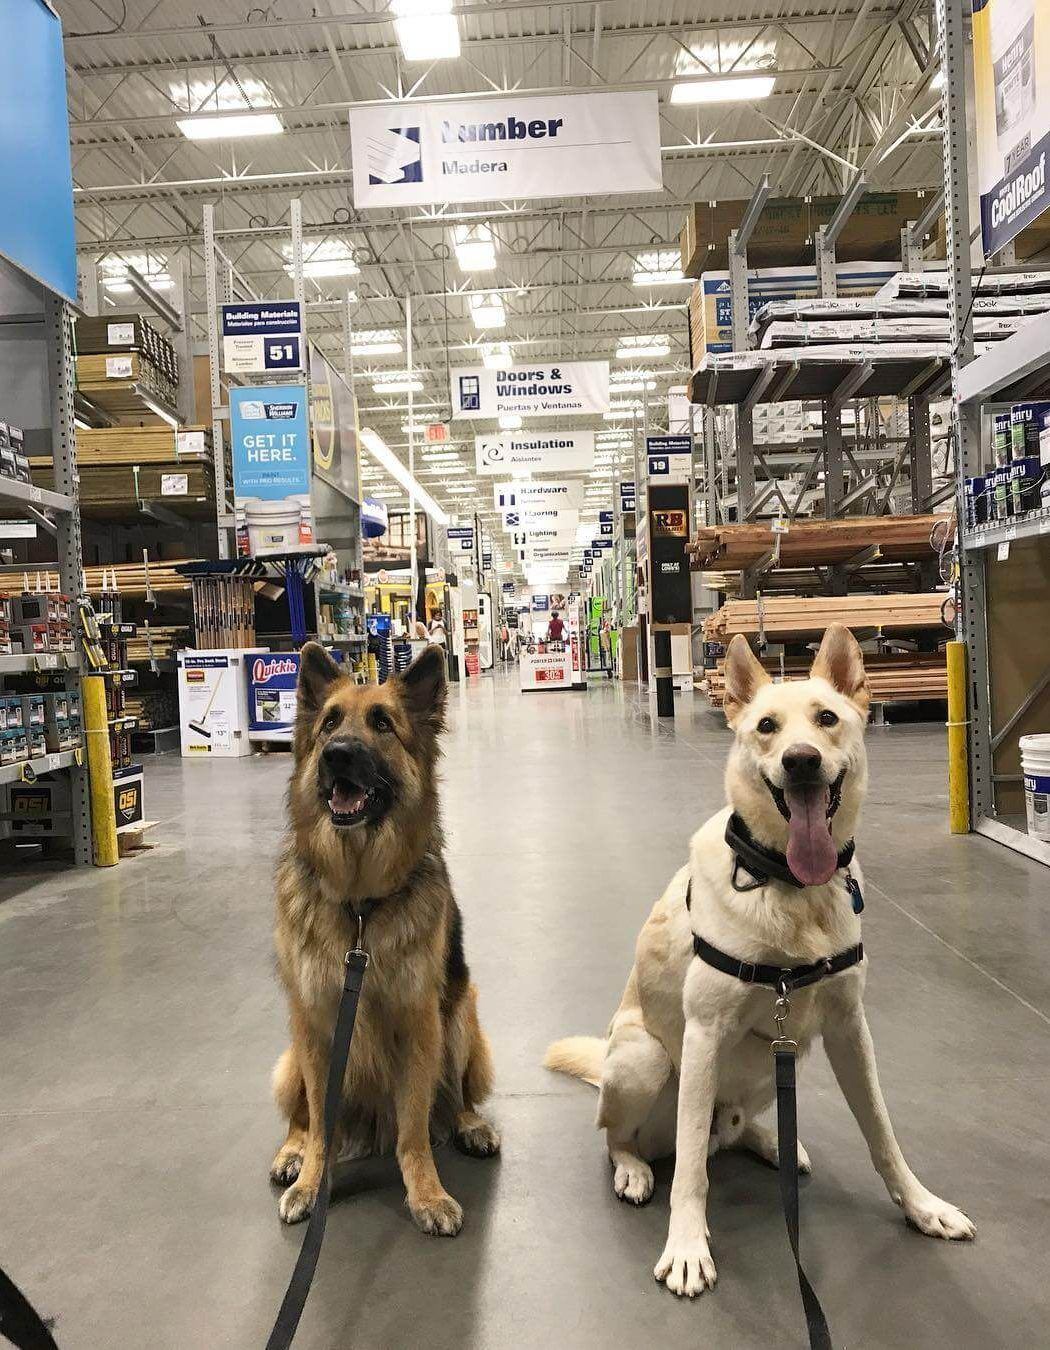 Most Dog Friendly Stores in America - Lowes | Dog stuff